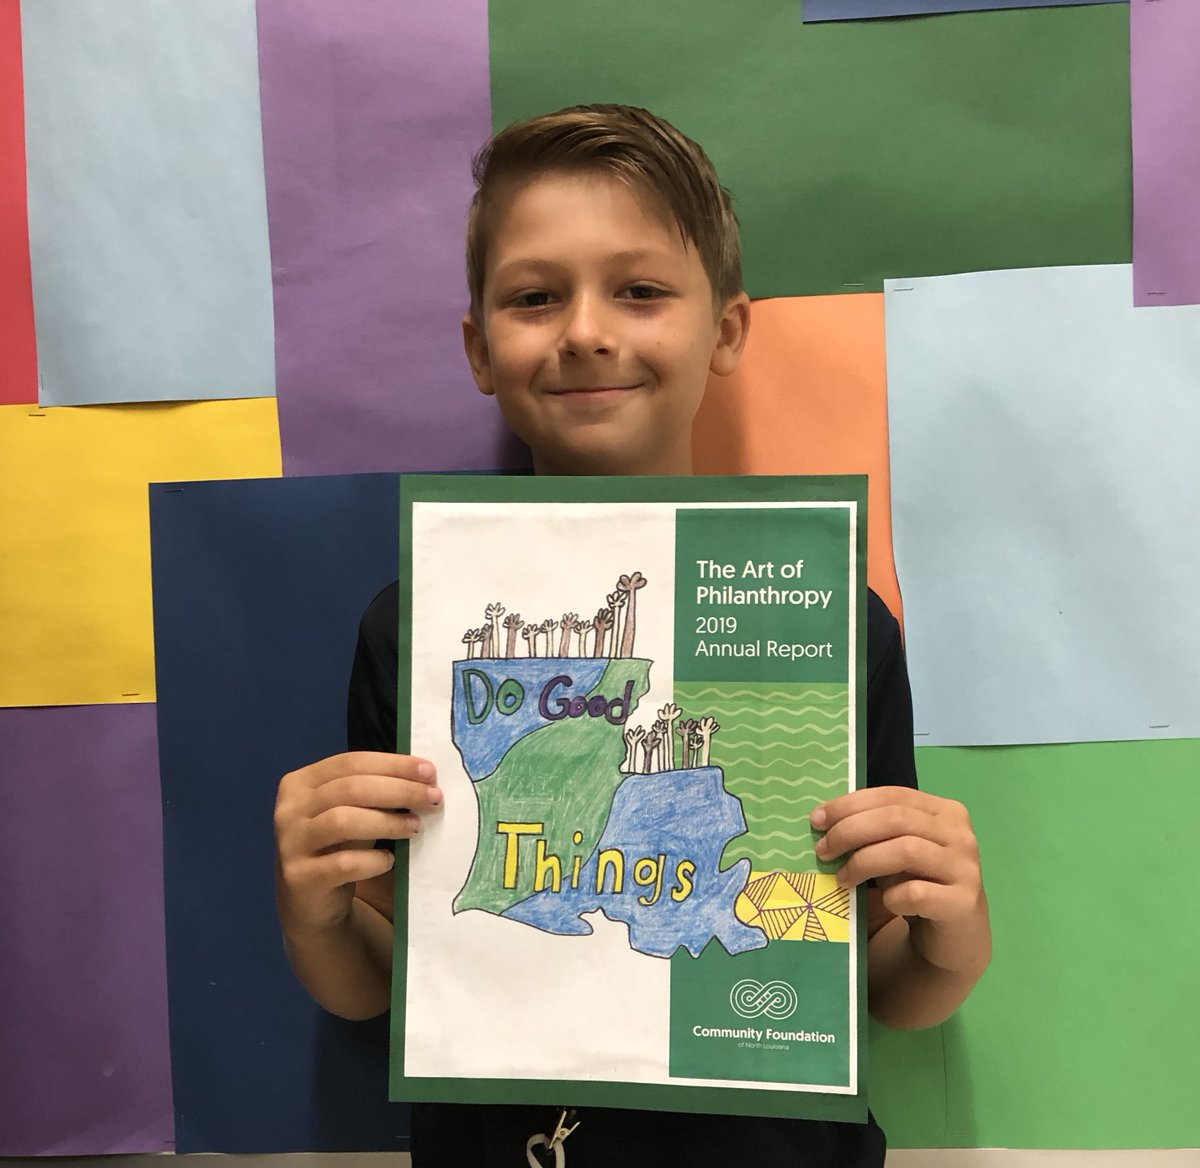 Congratulations to Riverside student Hudson King for winning the cover art contest with the Community Foundation of North Louisiana! Hudson's artwork was chosen to be the cover of their most recent annual report, winning his art class $500! #WeAreCaddo